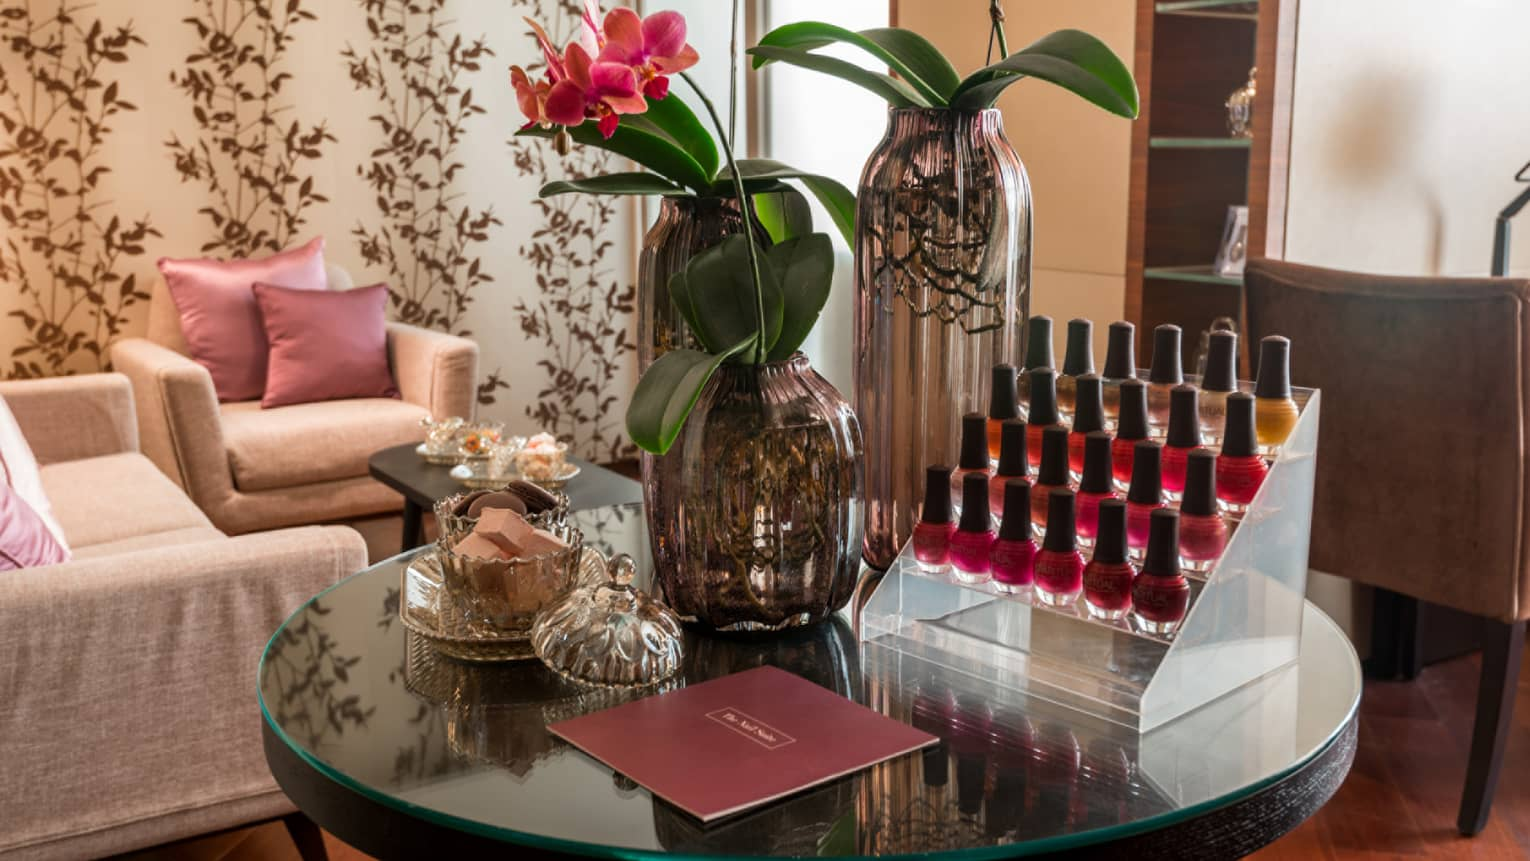 Close-up of The Nail Suite round table with trays of nail polish, flowers in vase